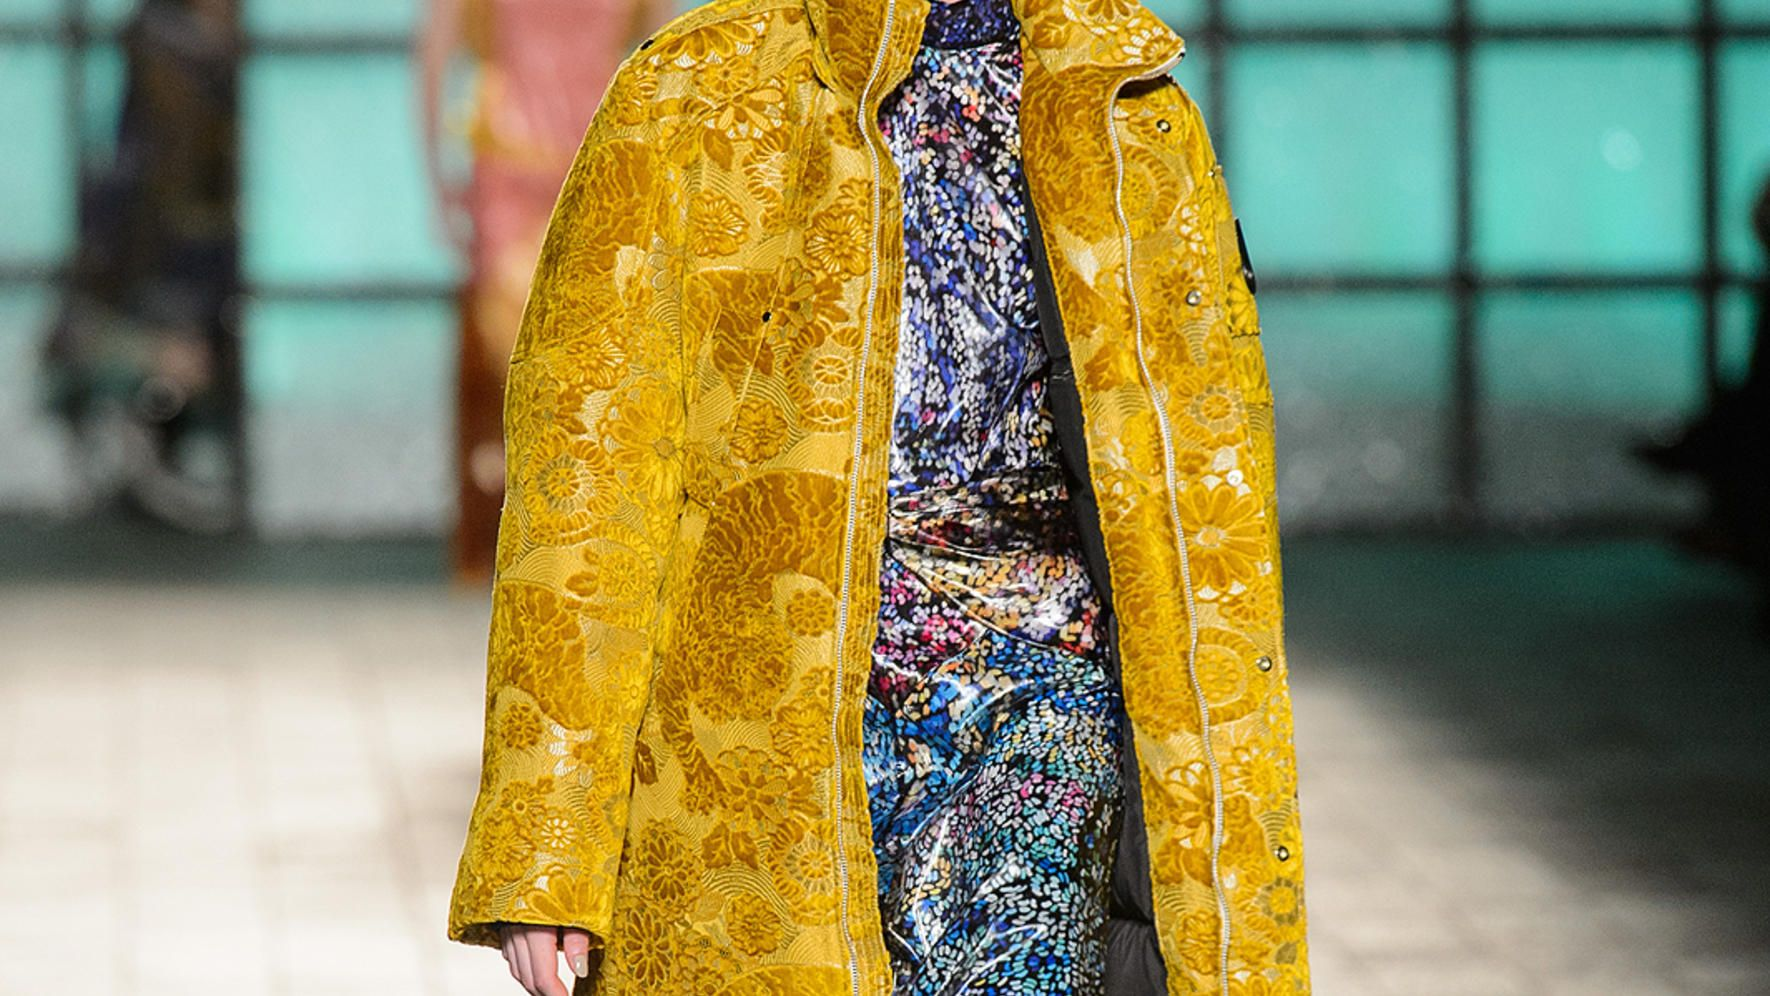 Mary Katrantzou Herbst/Winter 2018 in London